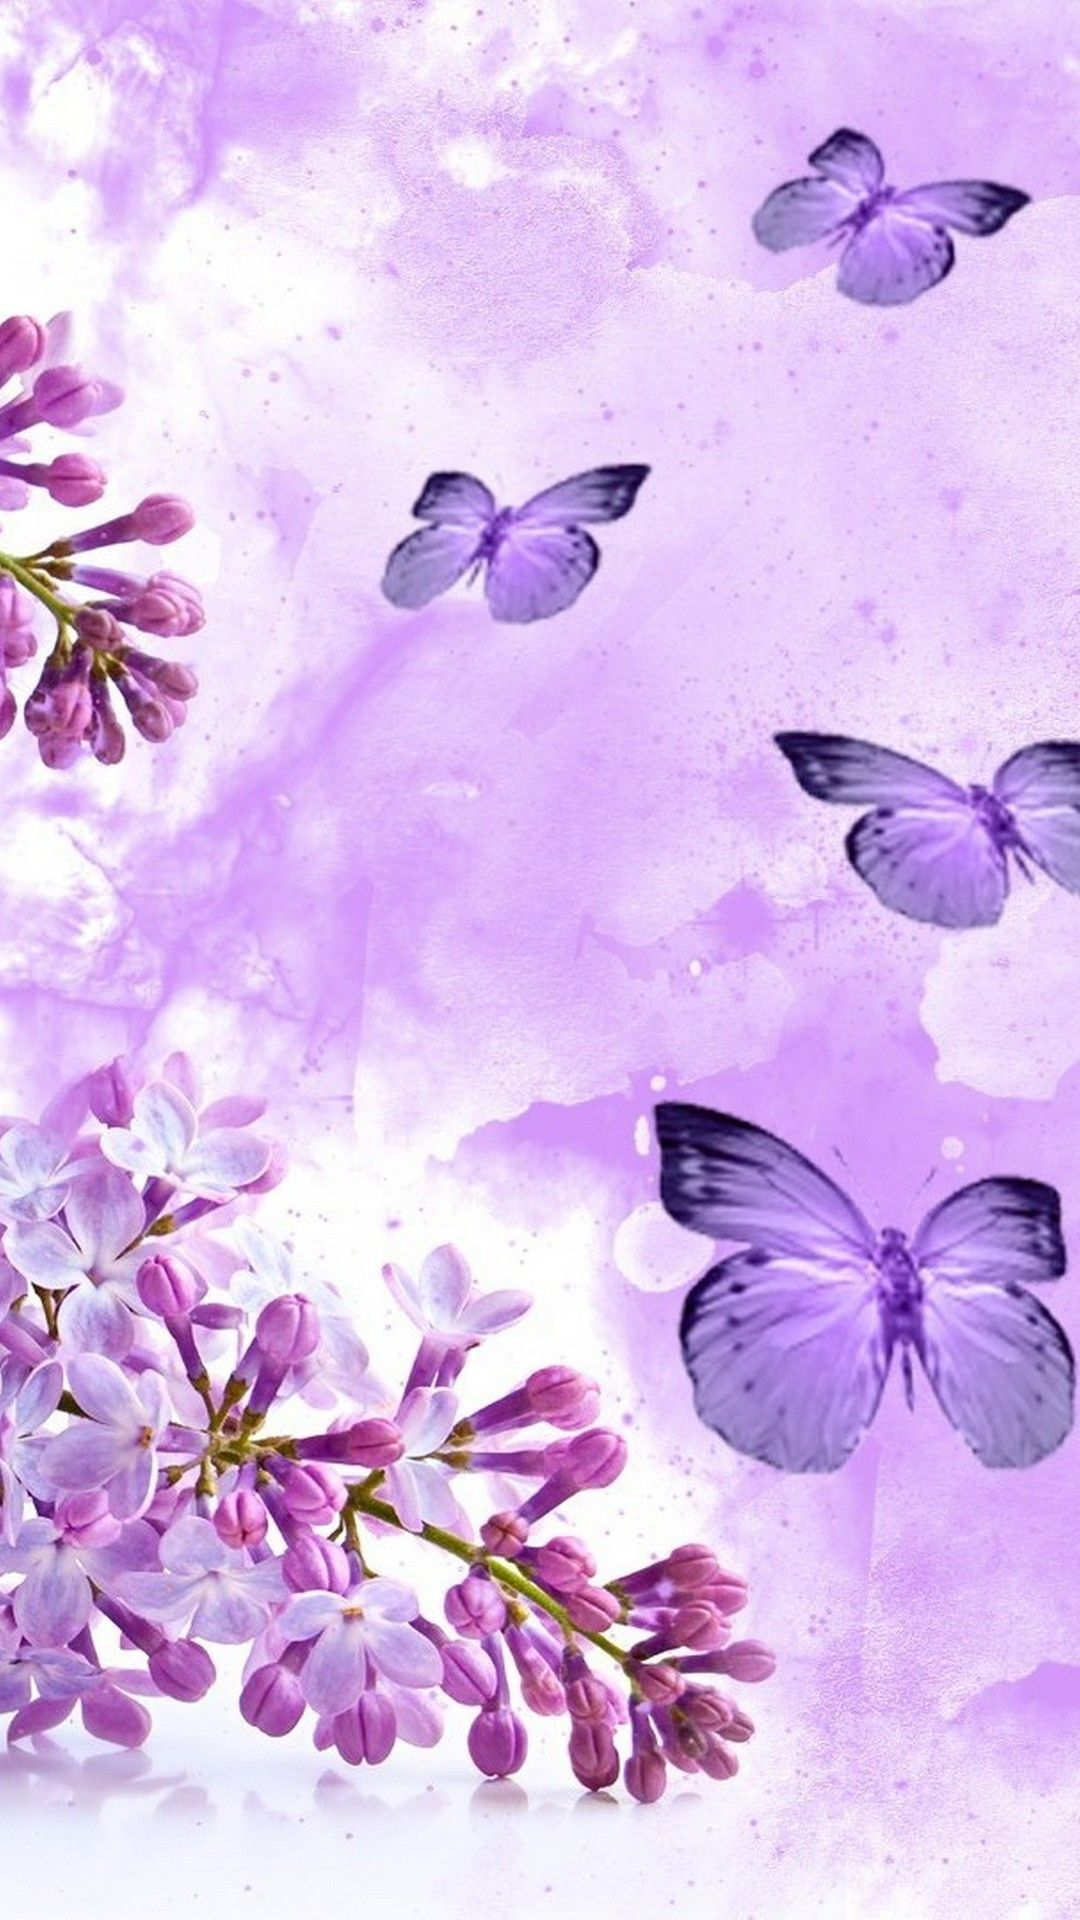 Cute Flower Wallpaper For Mobile Android Is The Best Highresolution Screen